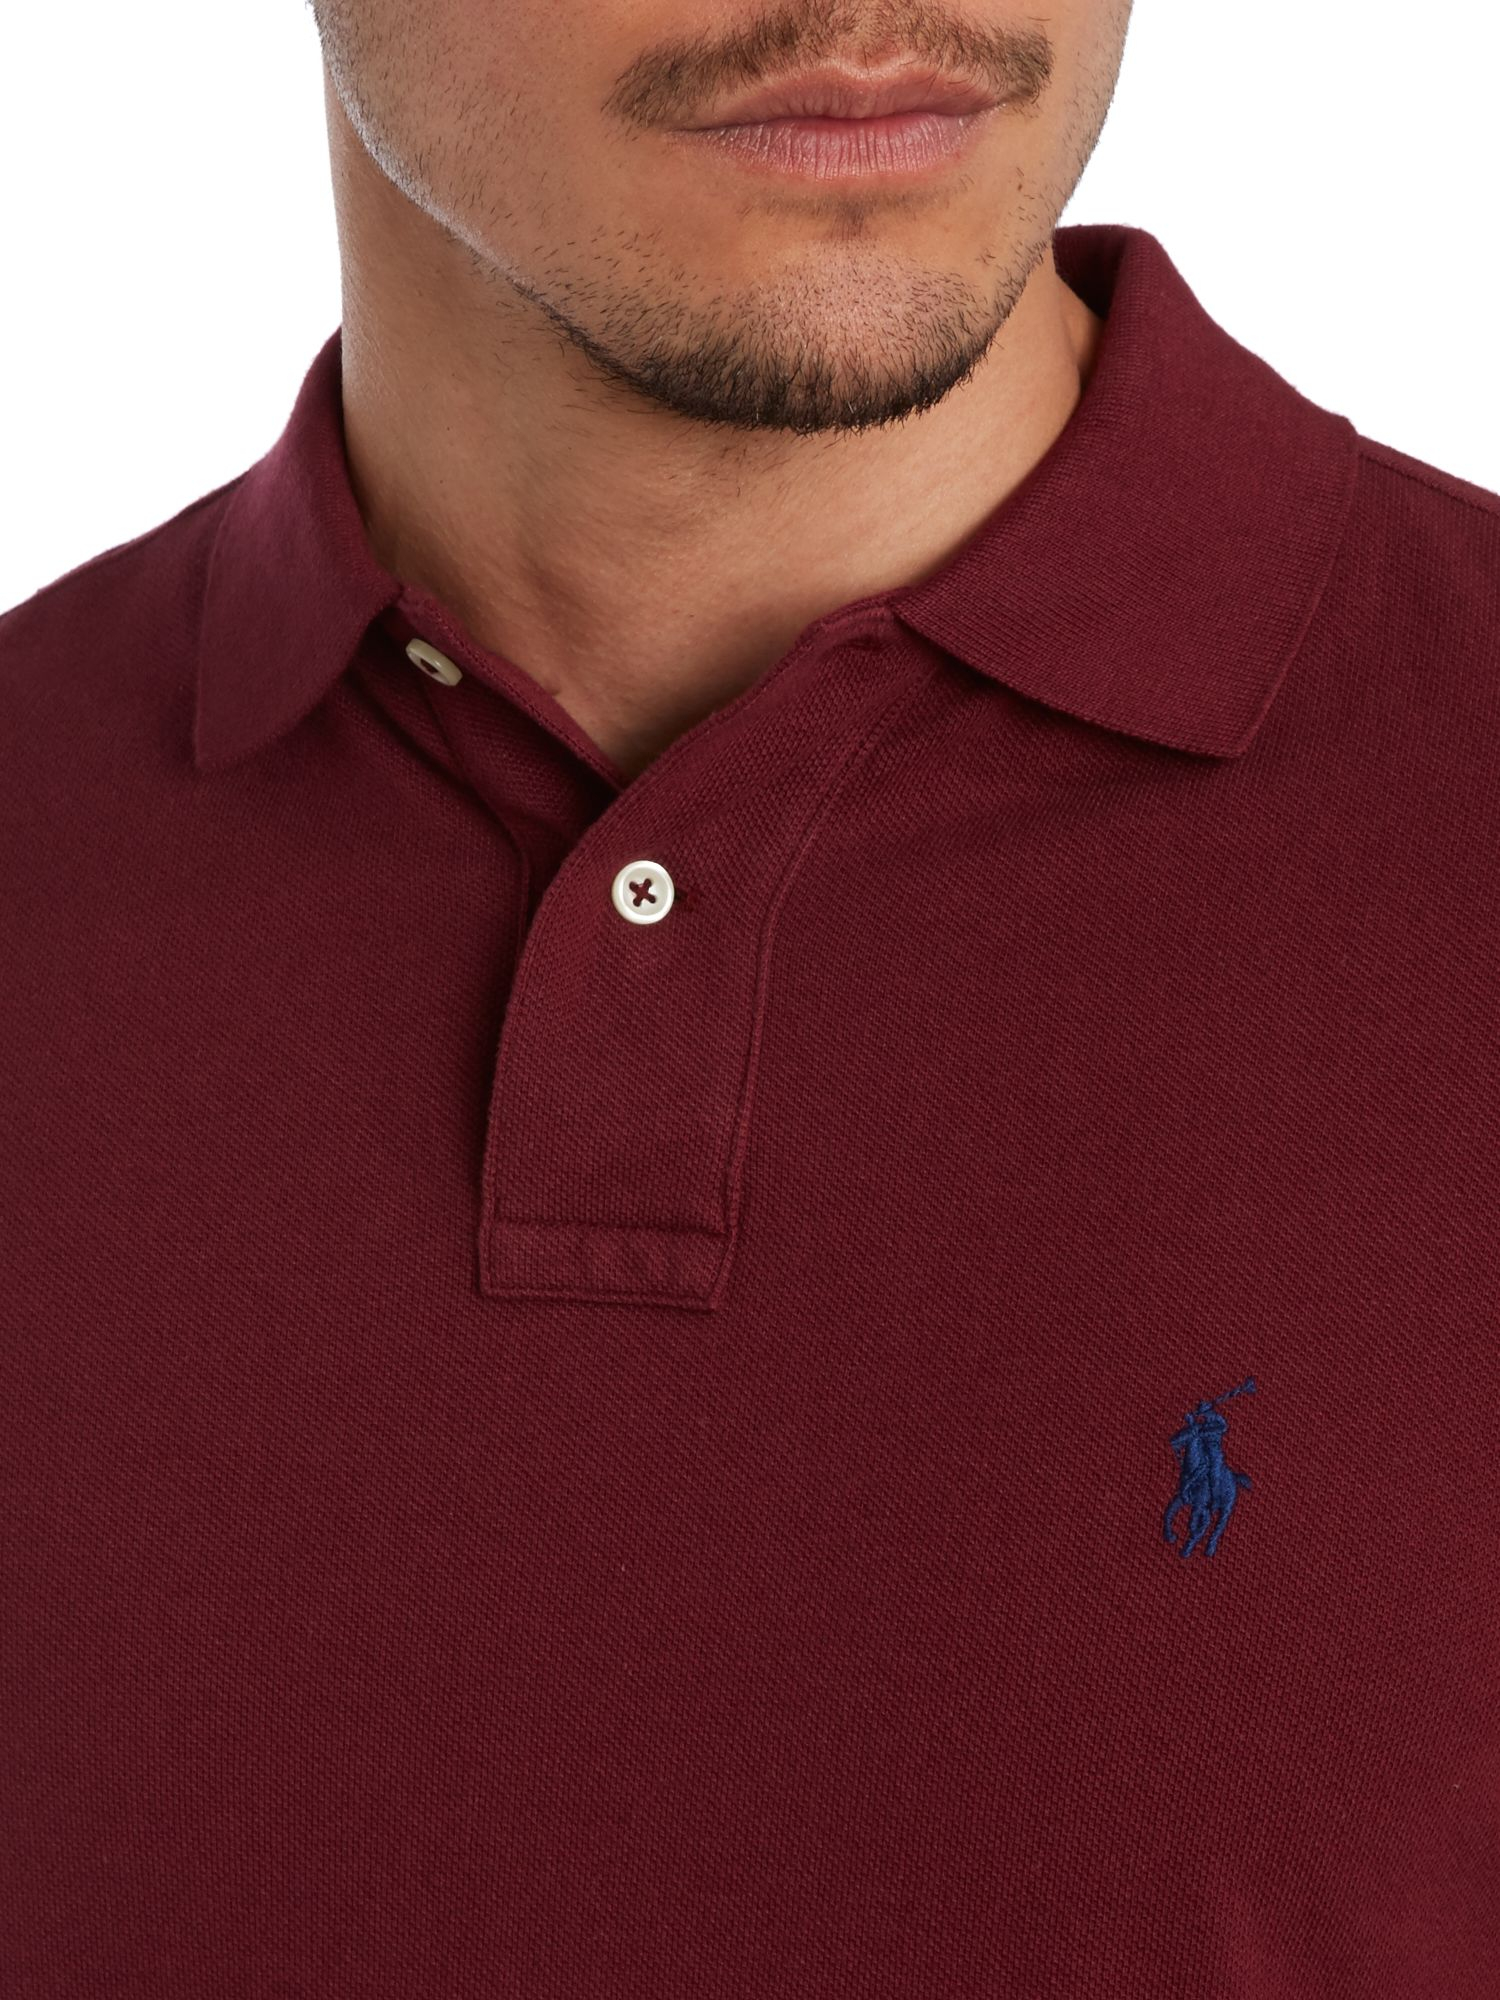 what stores sell ralph lauren polo shirts ralph lauren clothes